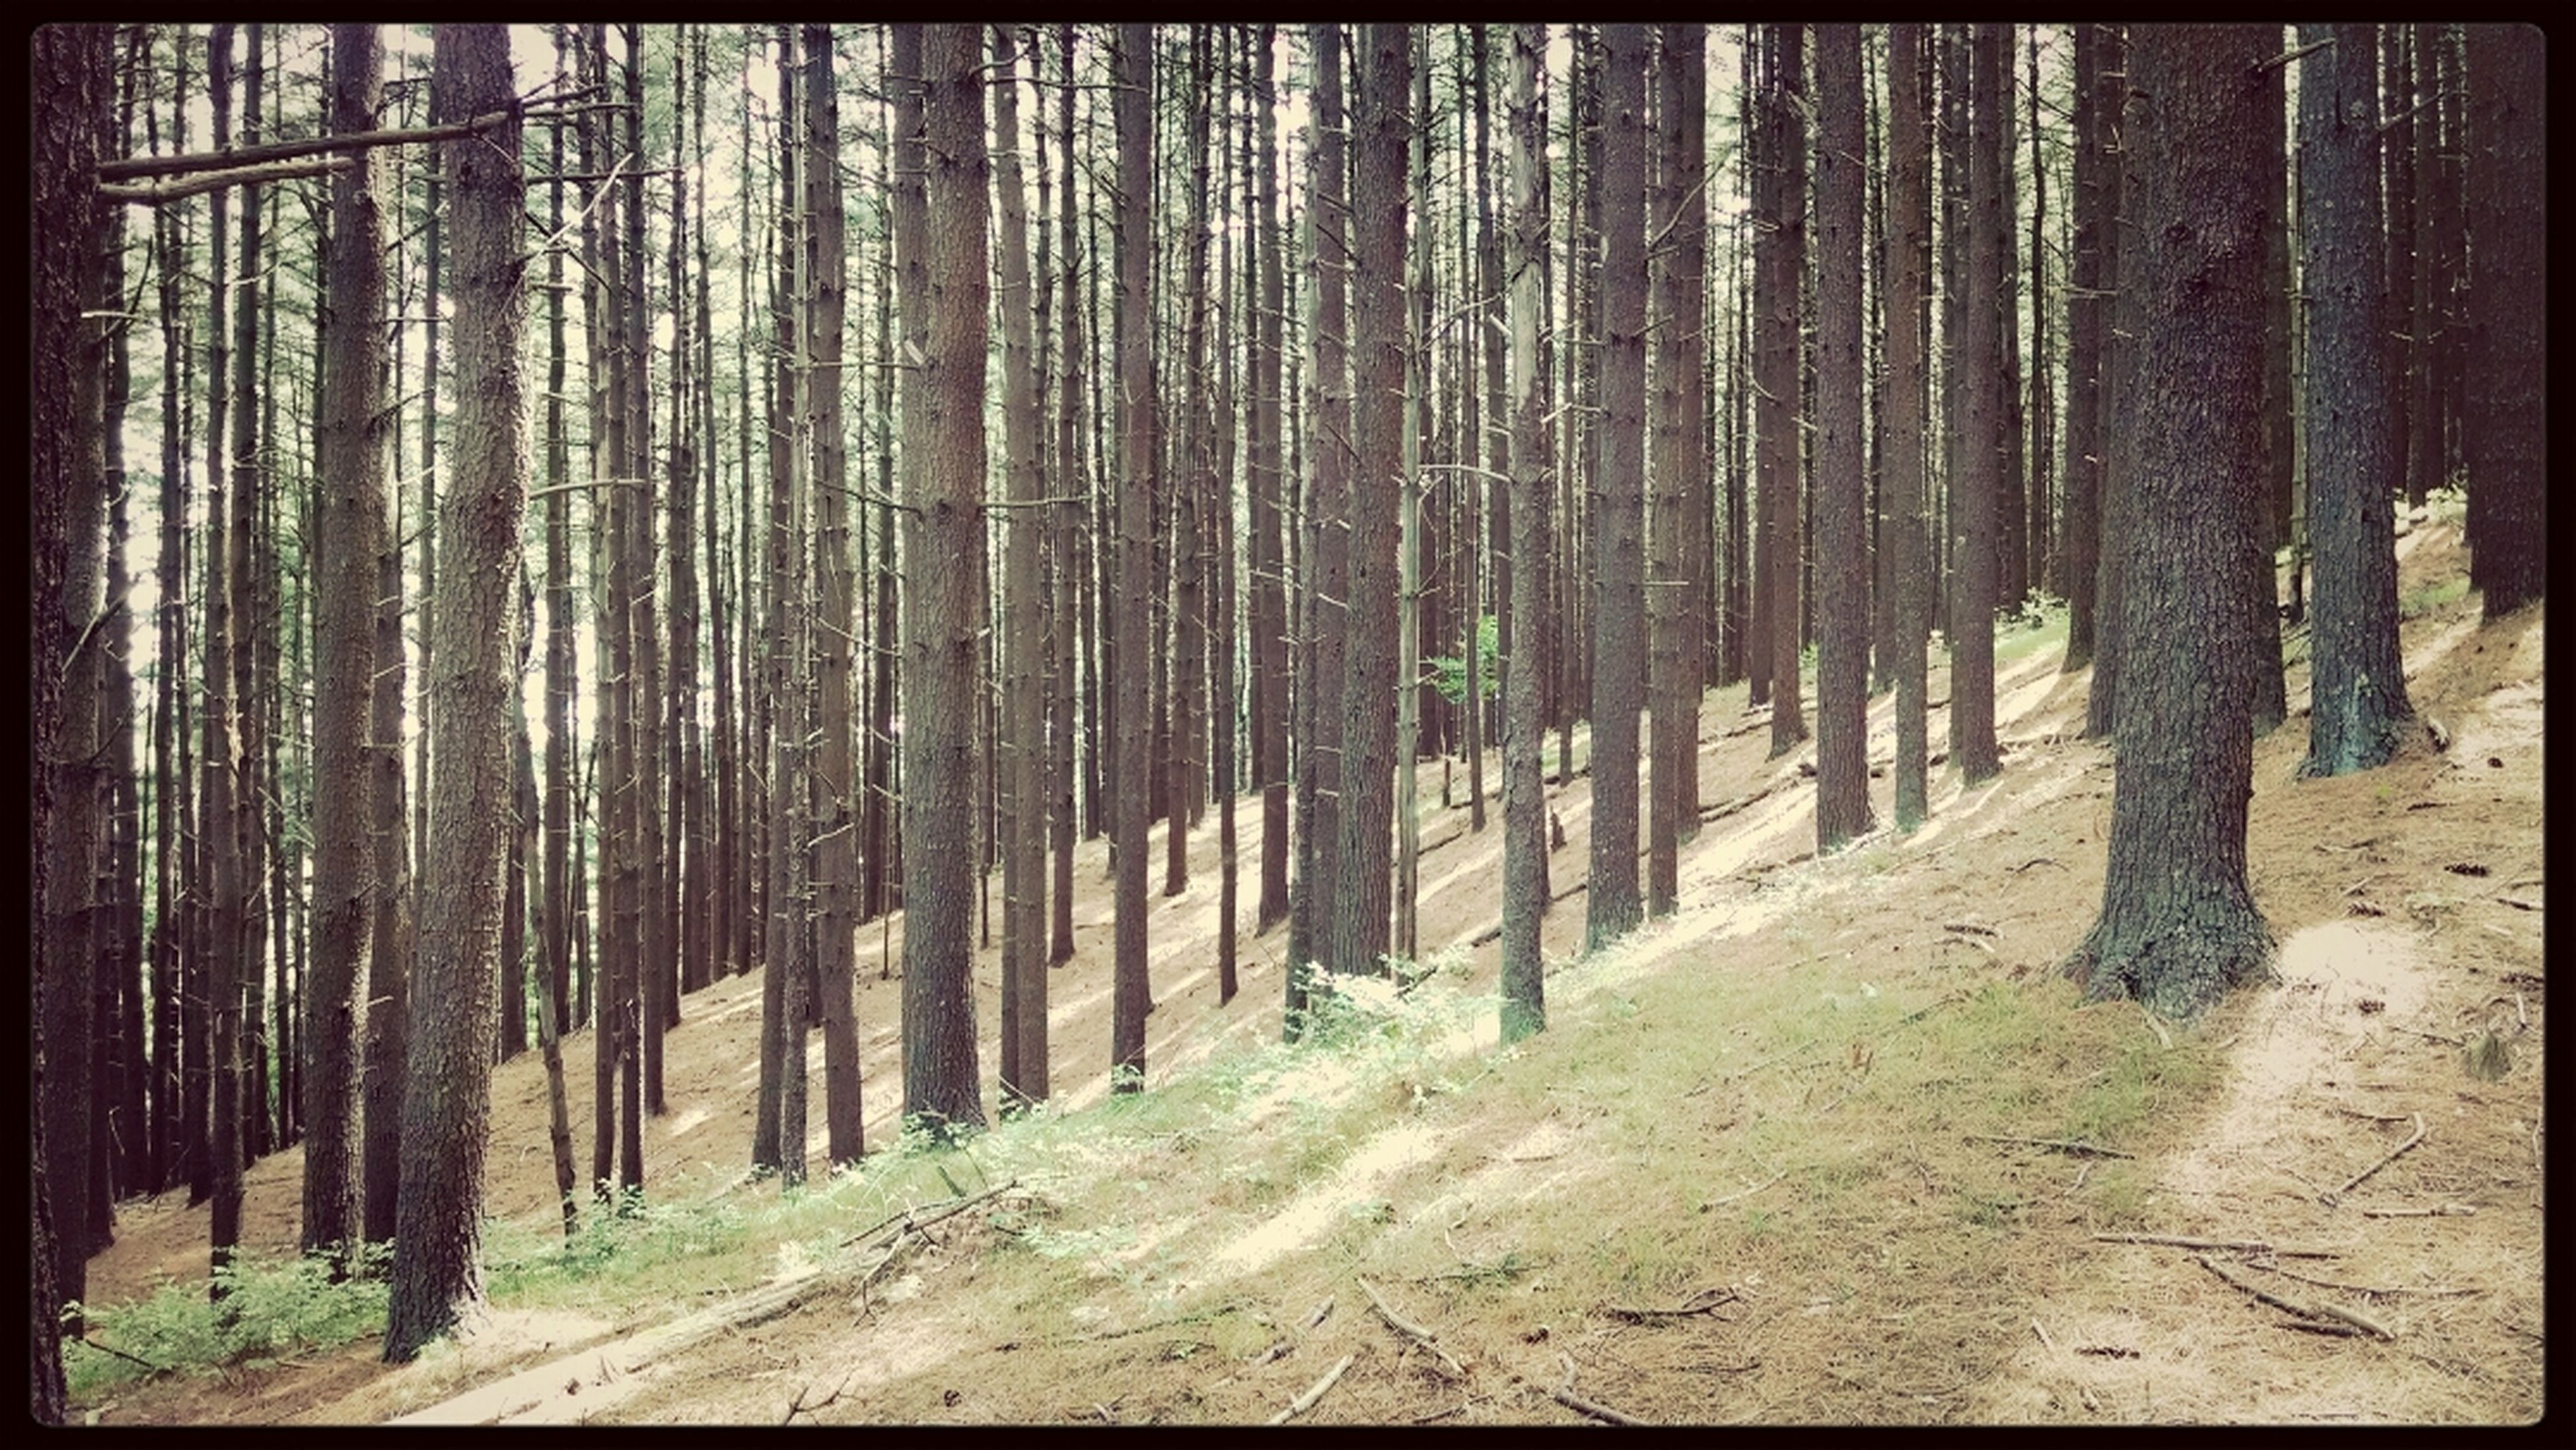 tree, forest, tree trunk, woodland, tranquility, transfer print, growth, nature, tranquil scene, auto post production filter, landscape, abundance, non-urban scene, beauty in nature, day, outdoors, scenics, wood - material, no people, woods